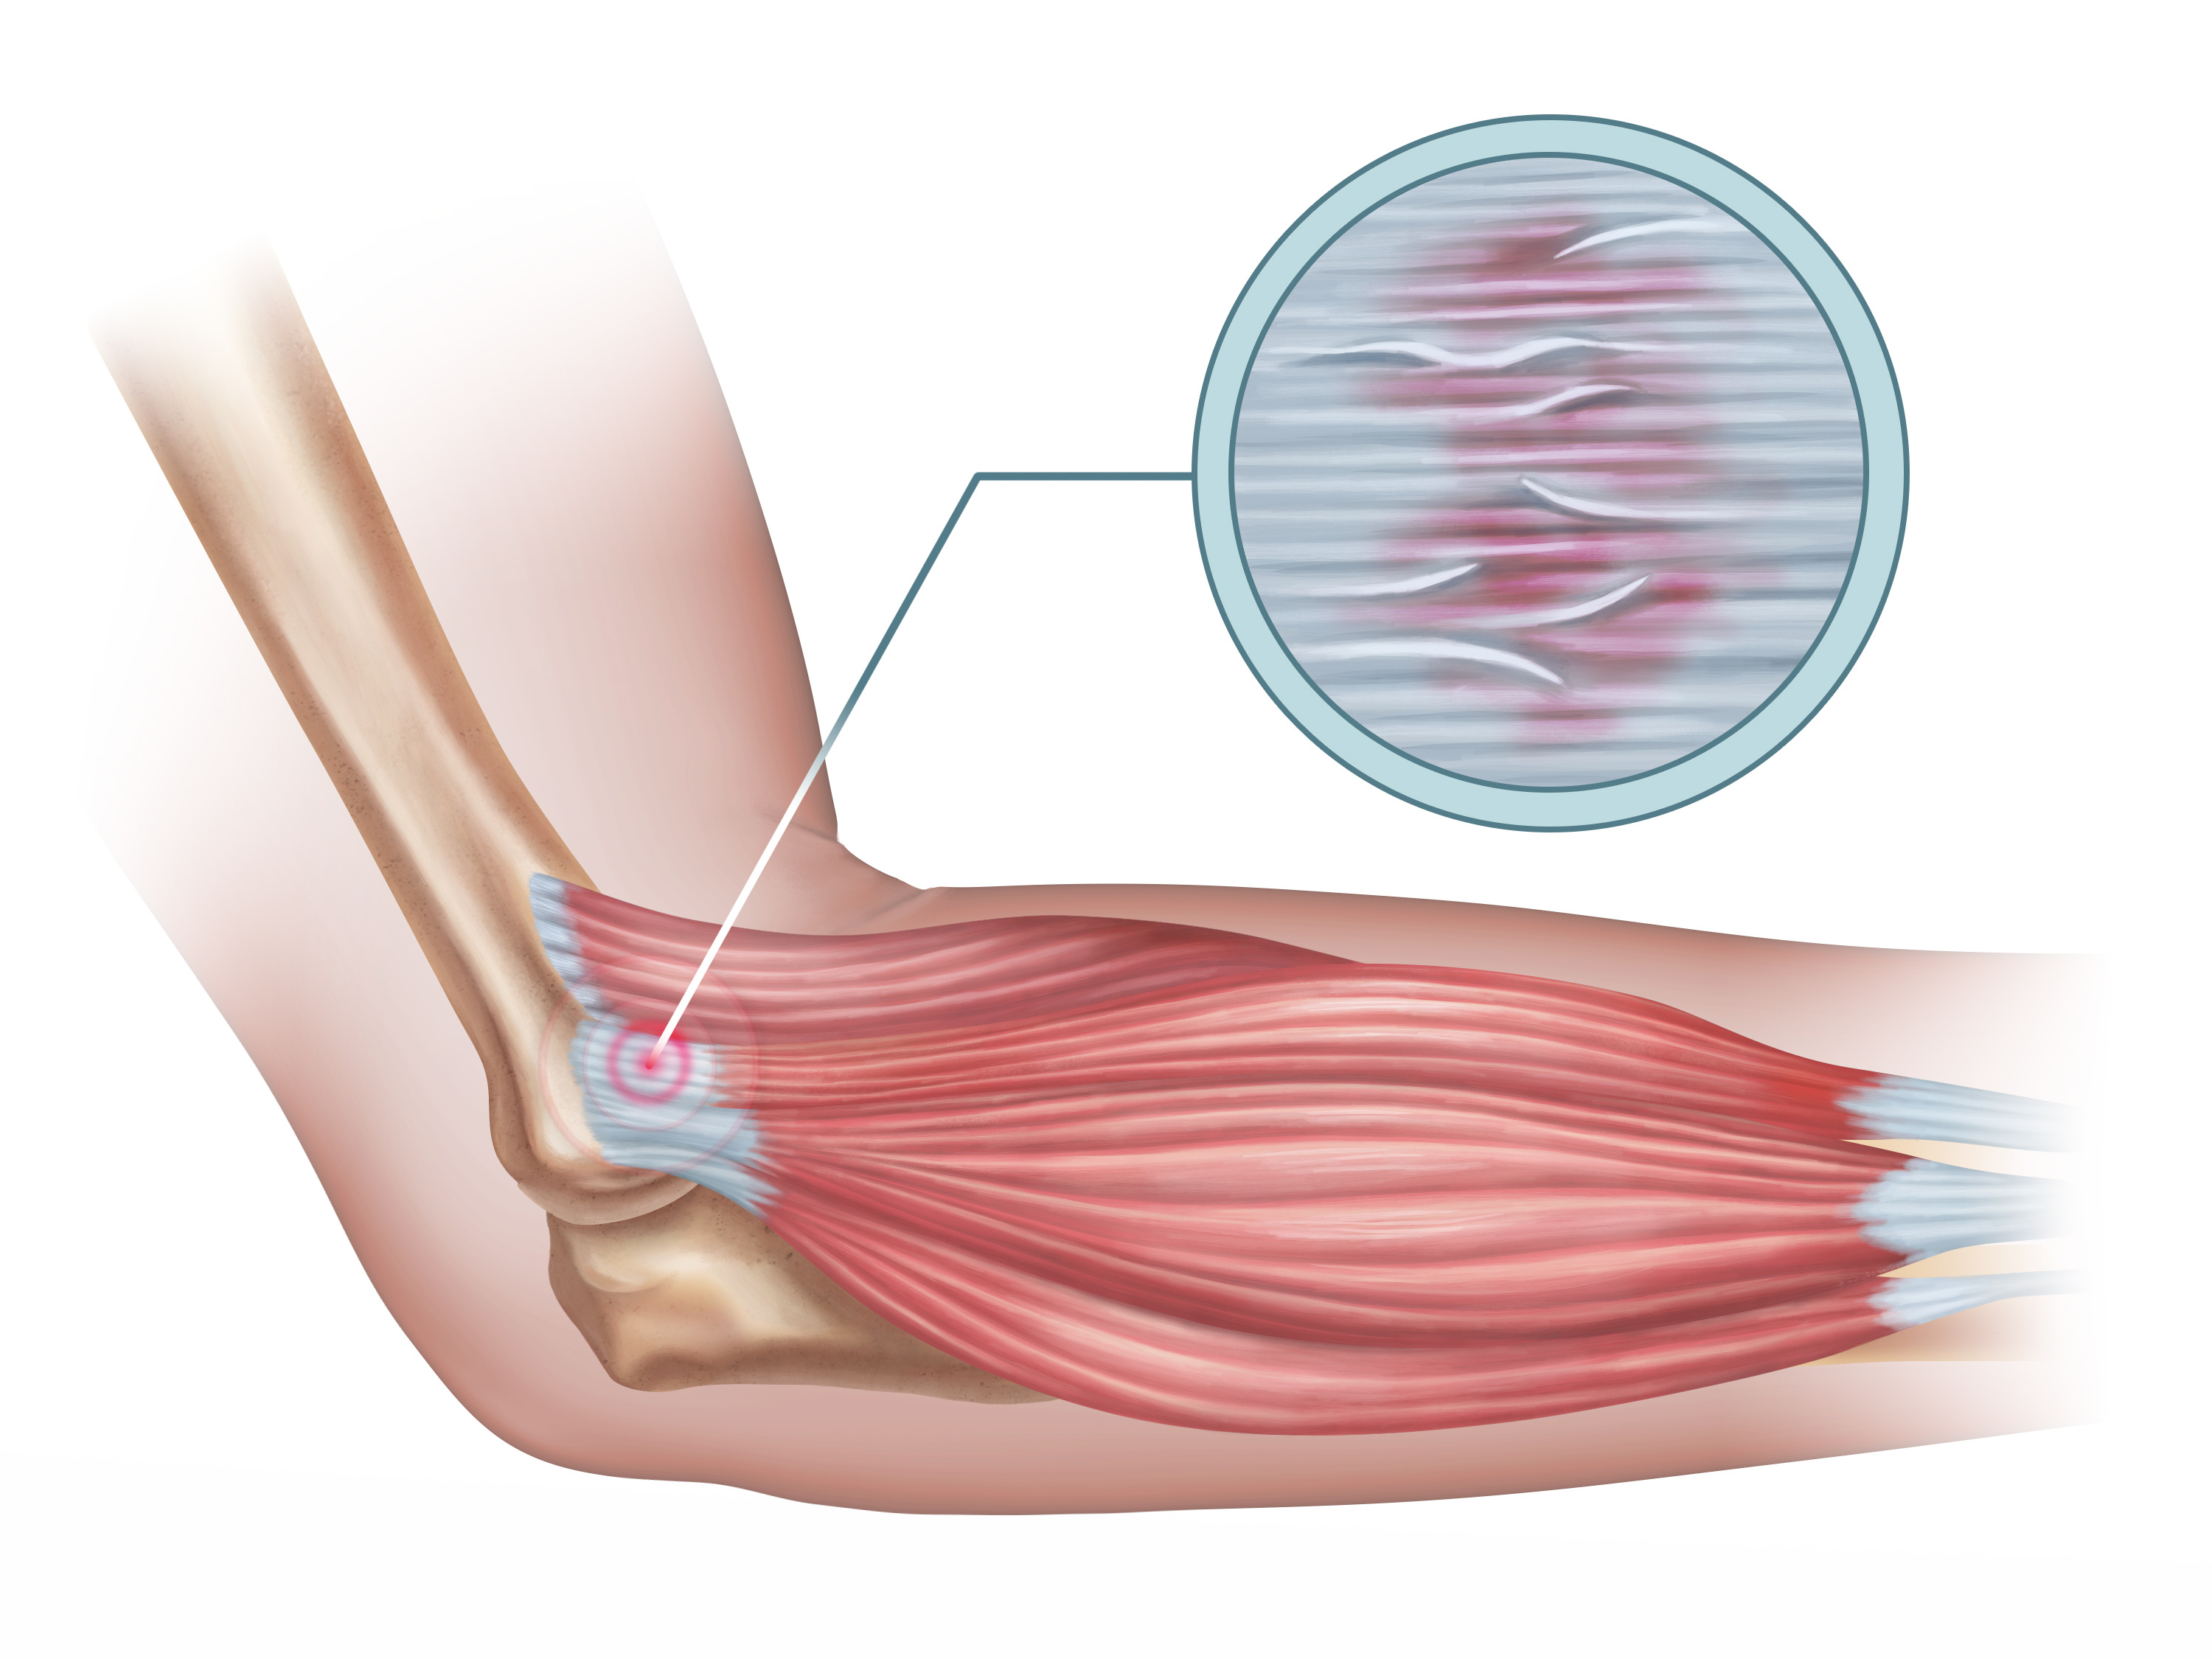 Nurokor treats tennis elbow naturally